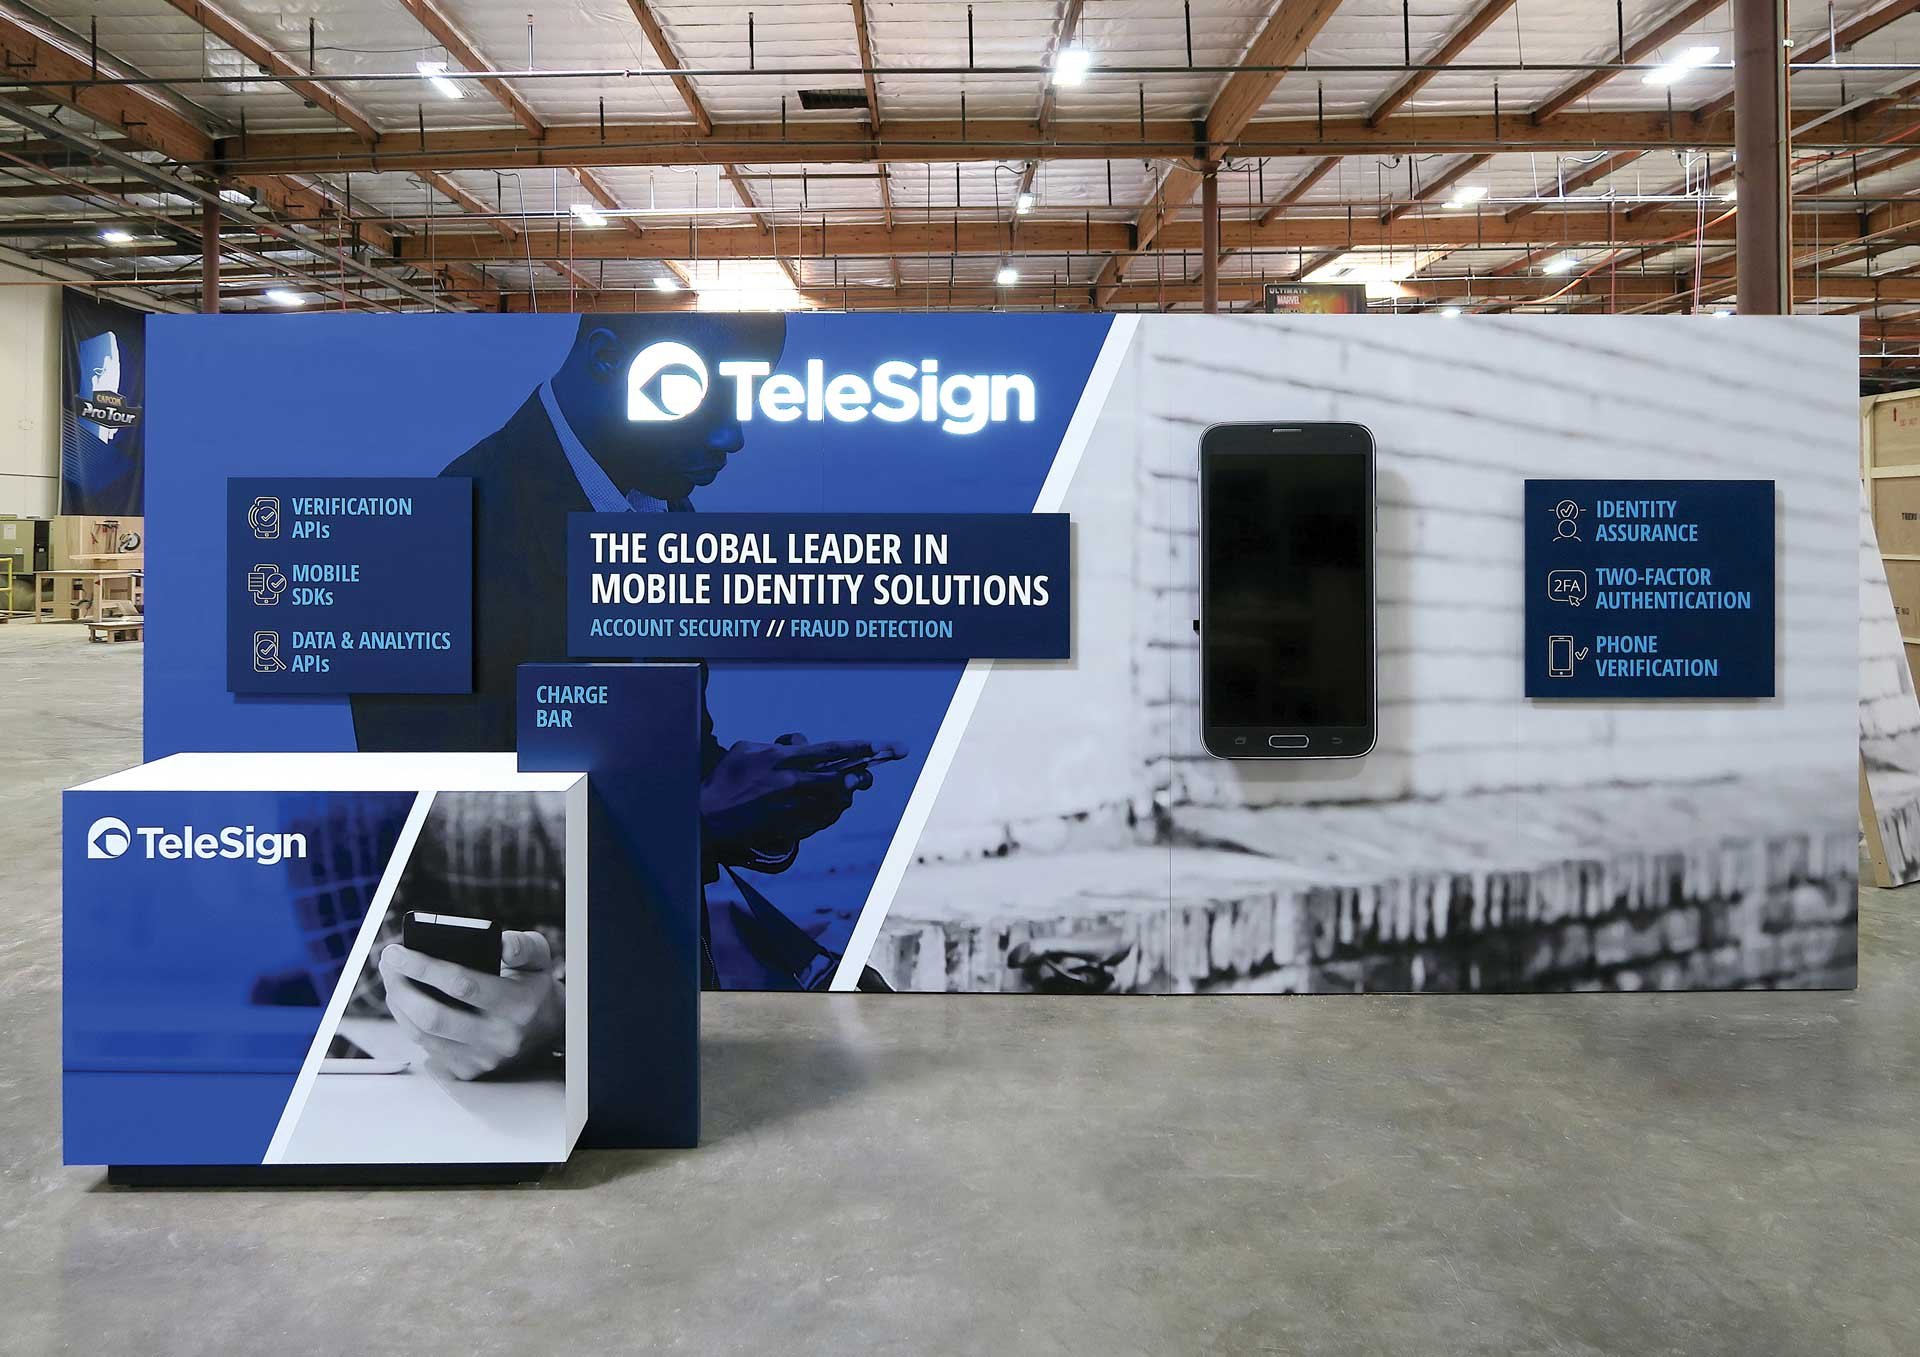 telesign-brand-exhibition-stand-2